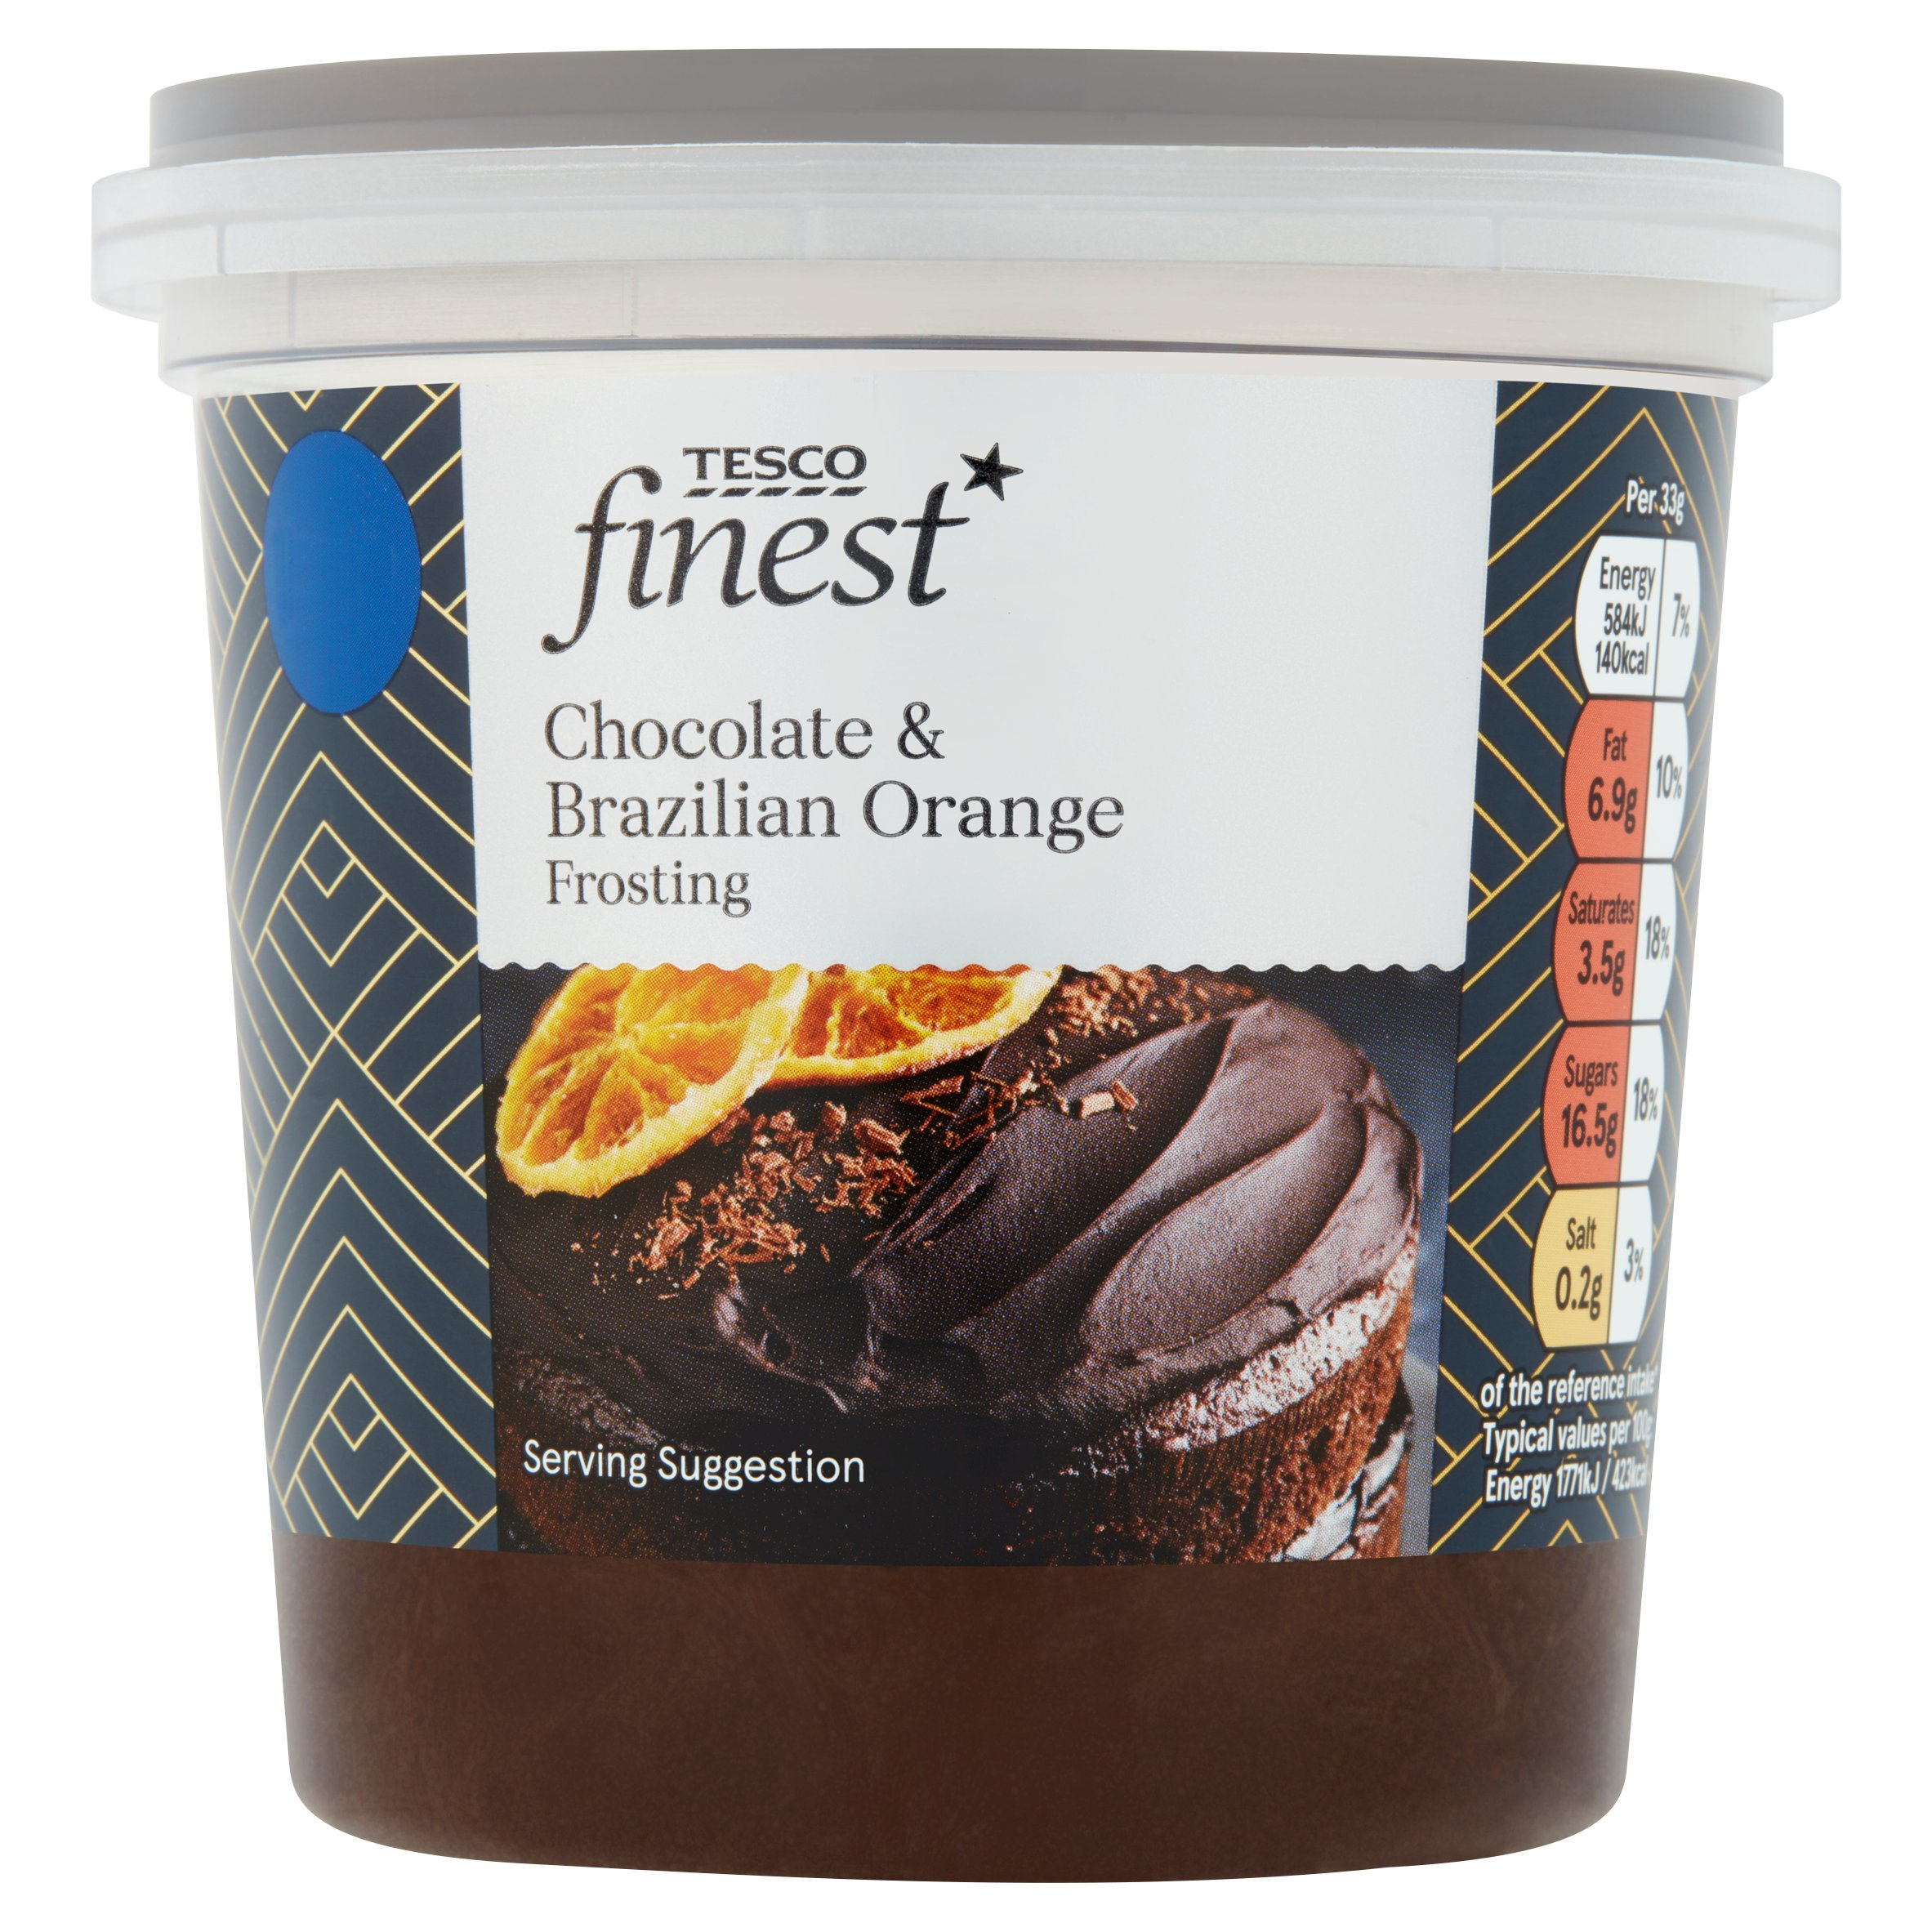 Tesco Finest Chocolate & Brazilian Orange Frosting 400G